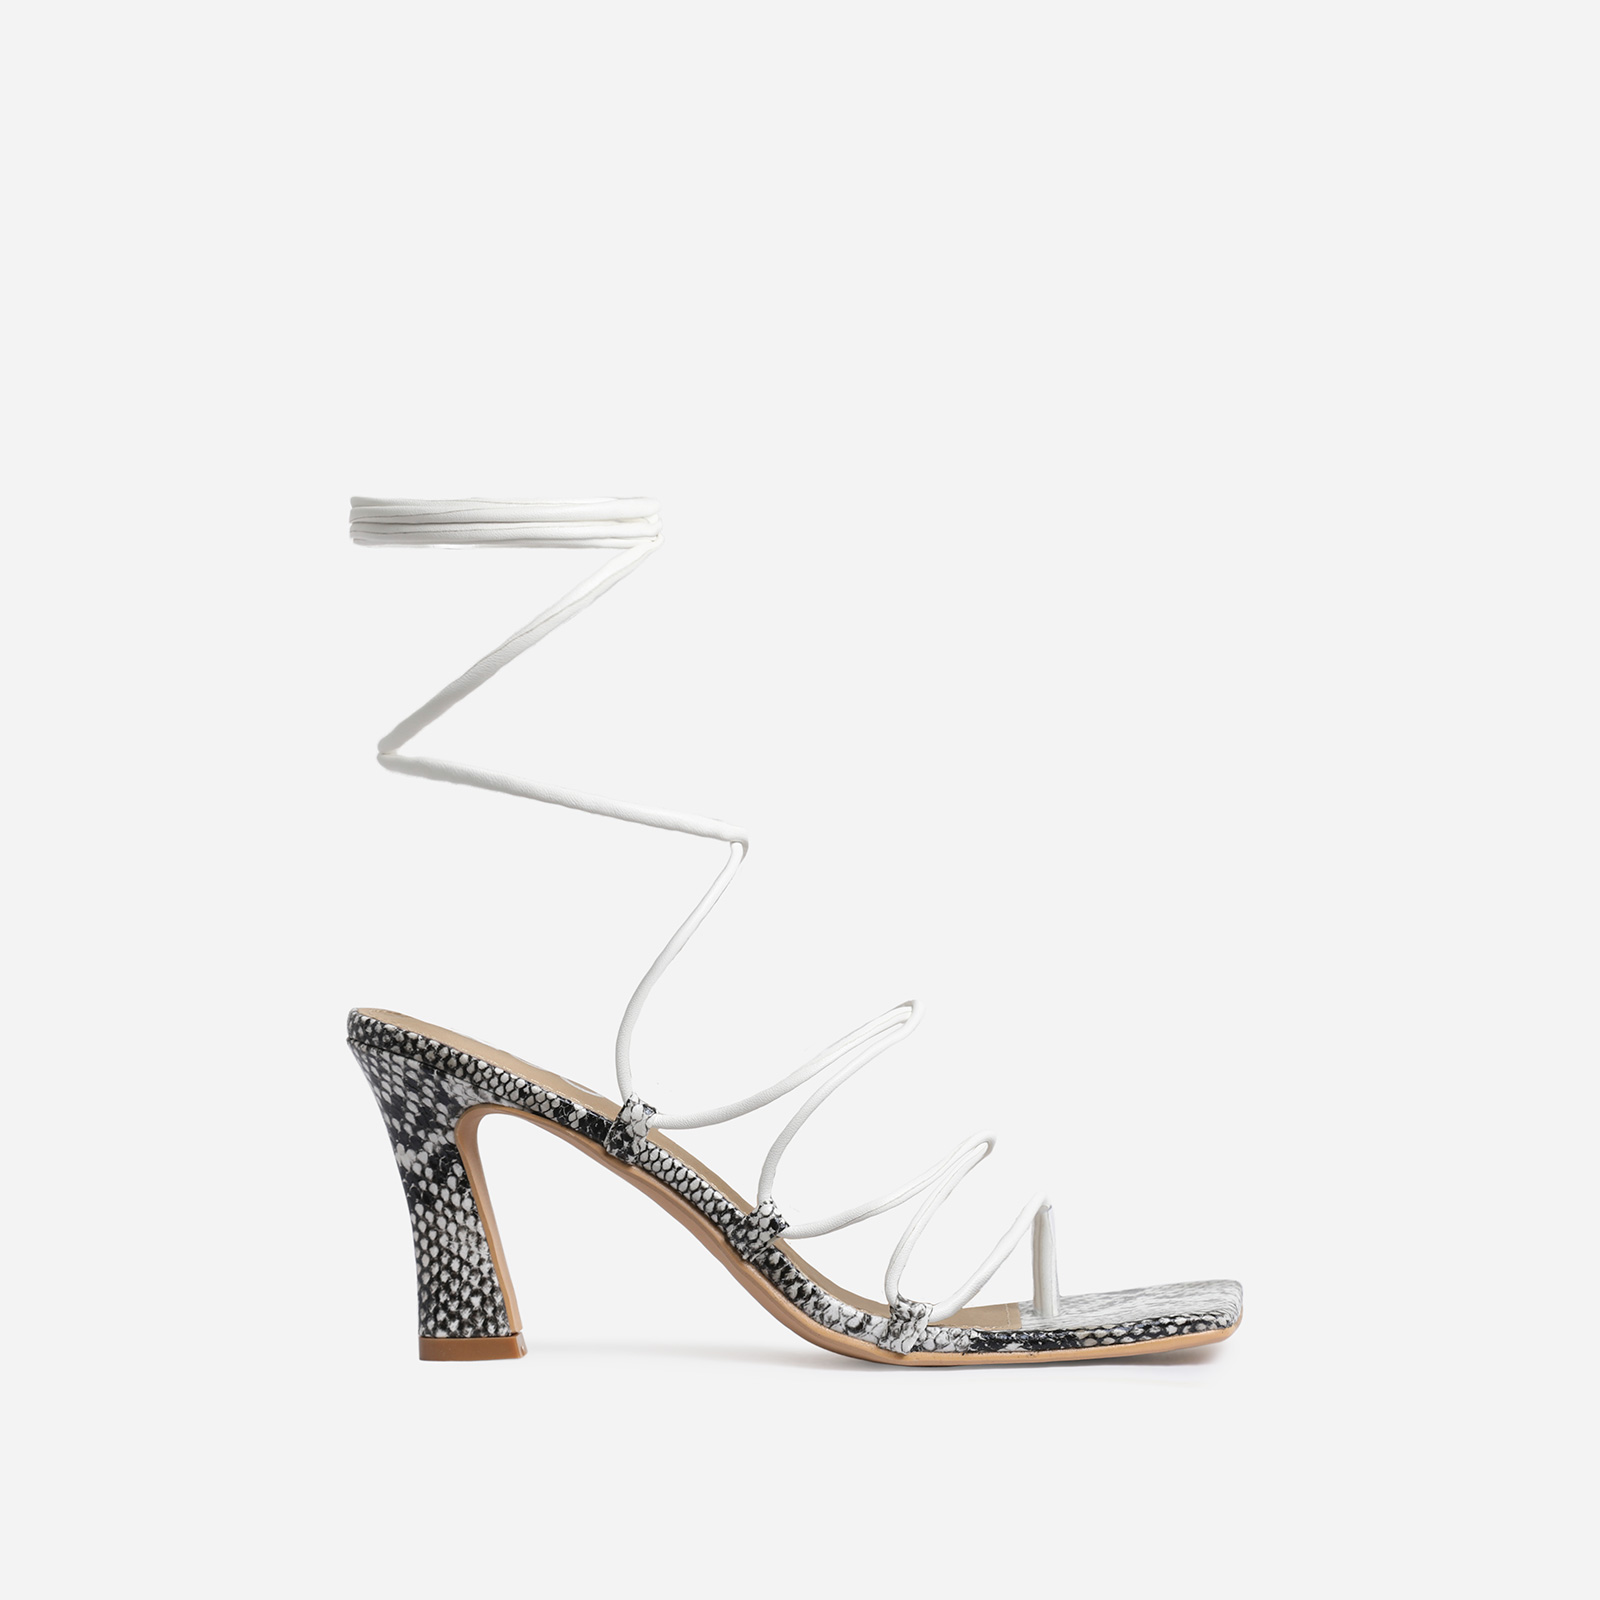 Trixie Square Toe White Lace Up Kitten Heel In Nude Snake Print Faux Leather